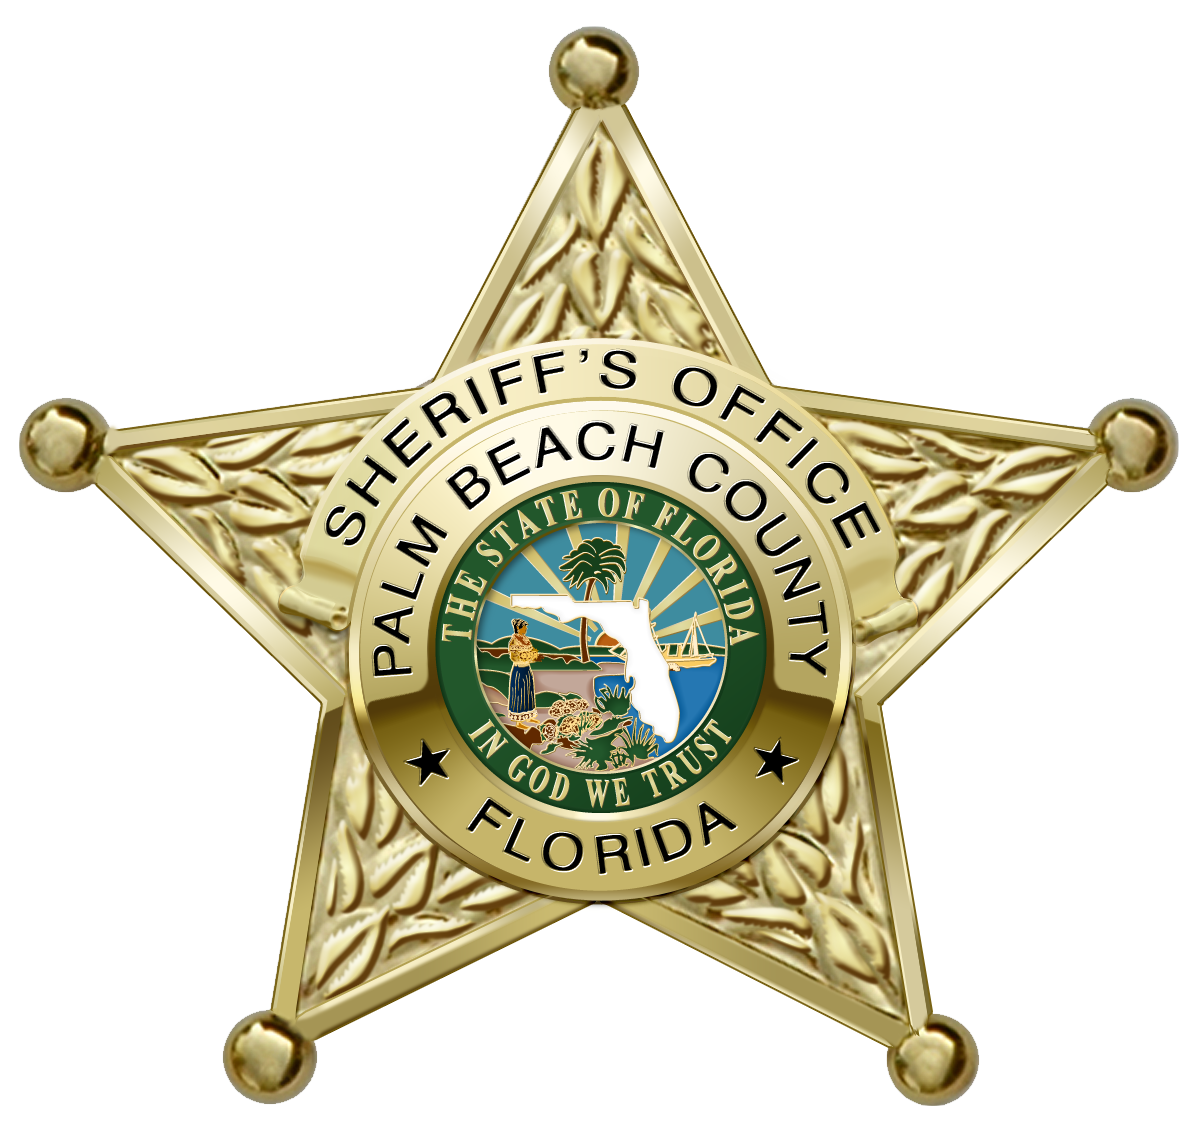 District 9 - Royal Palm Beach - Palm Beach County Sheriff's Office